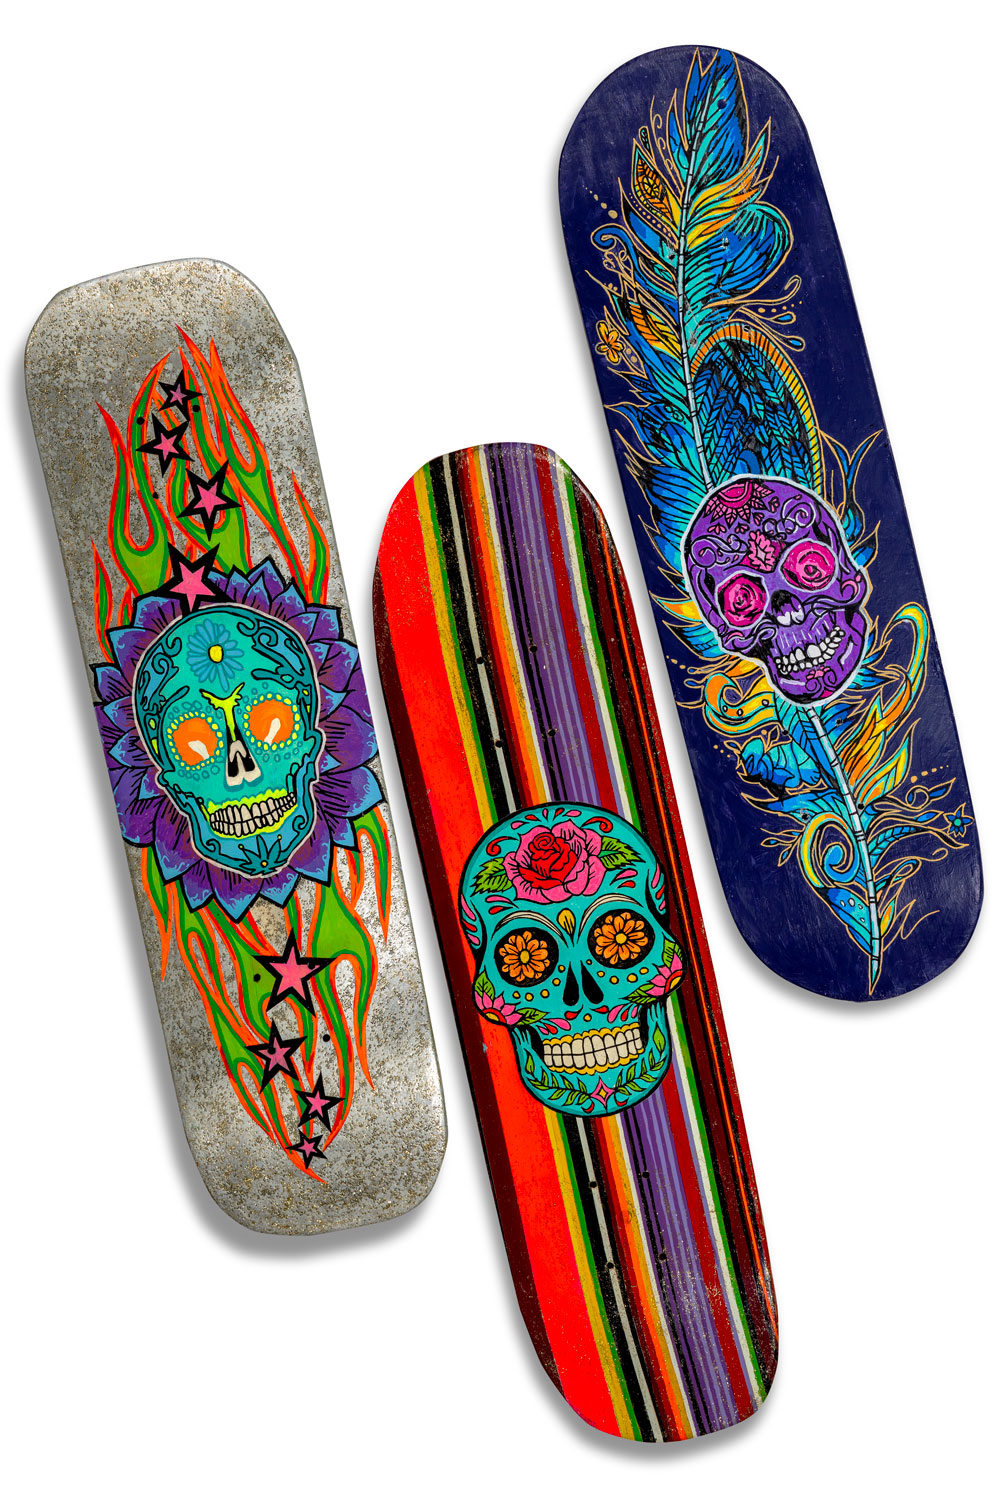 Calaveras Series By Nicolas Simon 6